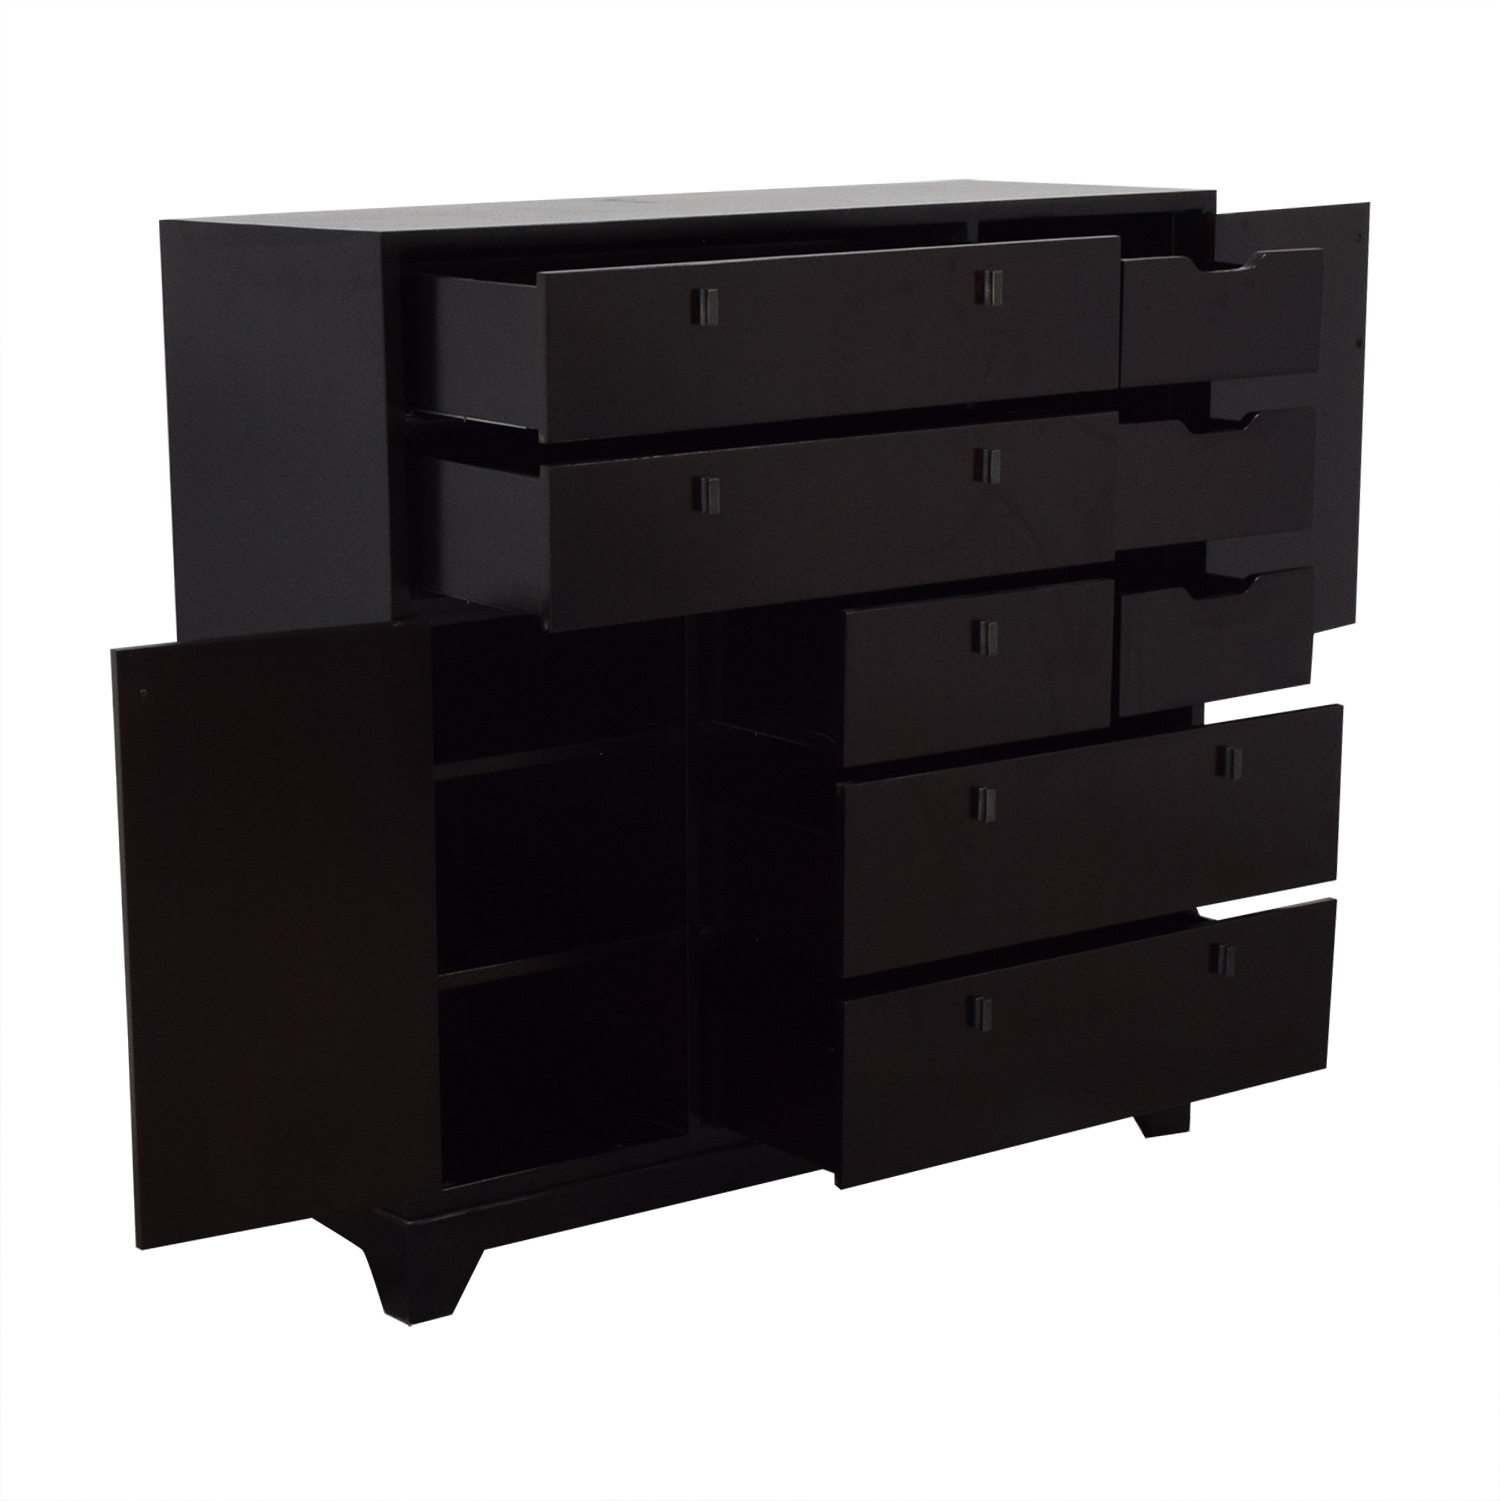 shop Crate & Barrel Five Drawer Dresser with Two Cabinets Crate & Barrel Dressers